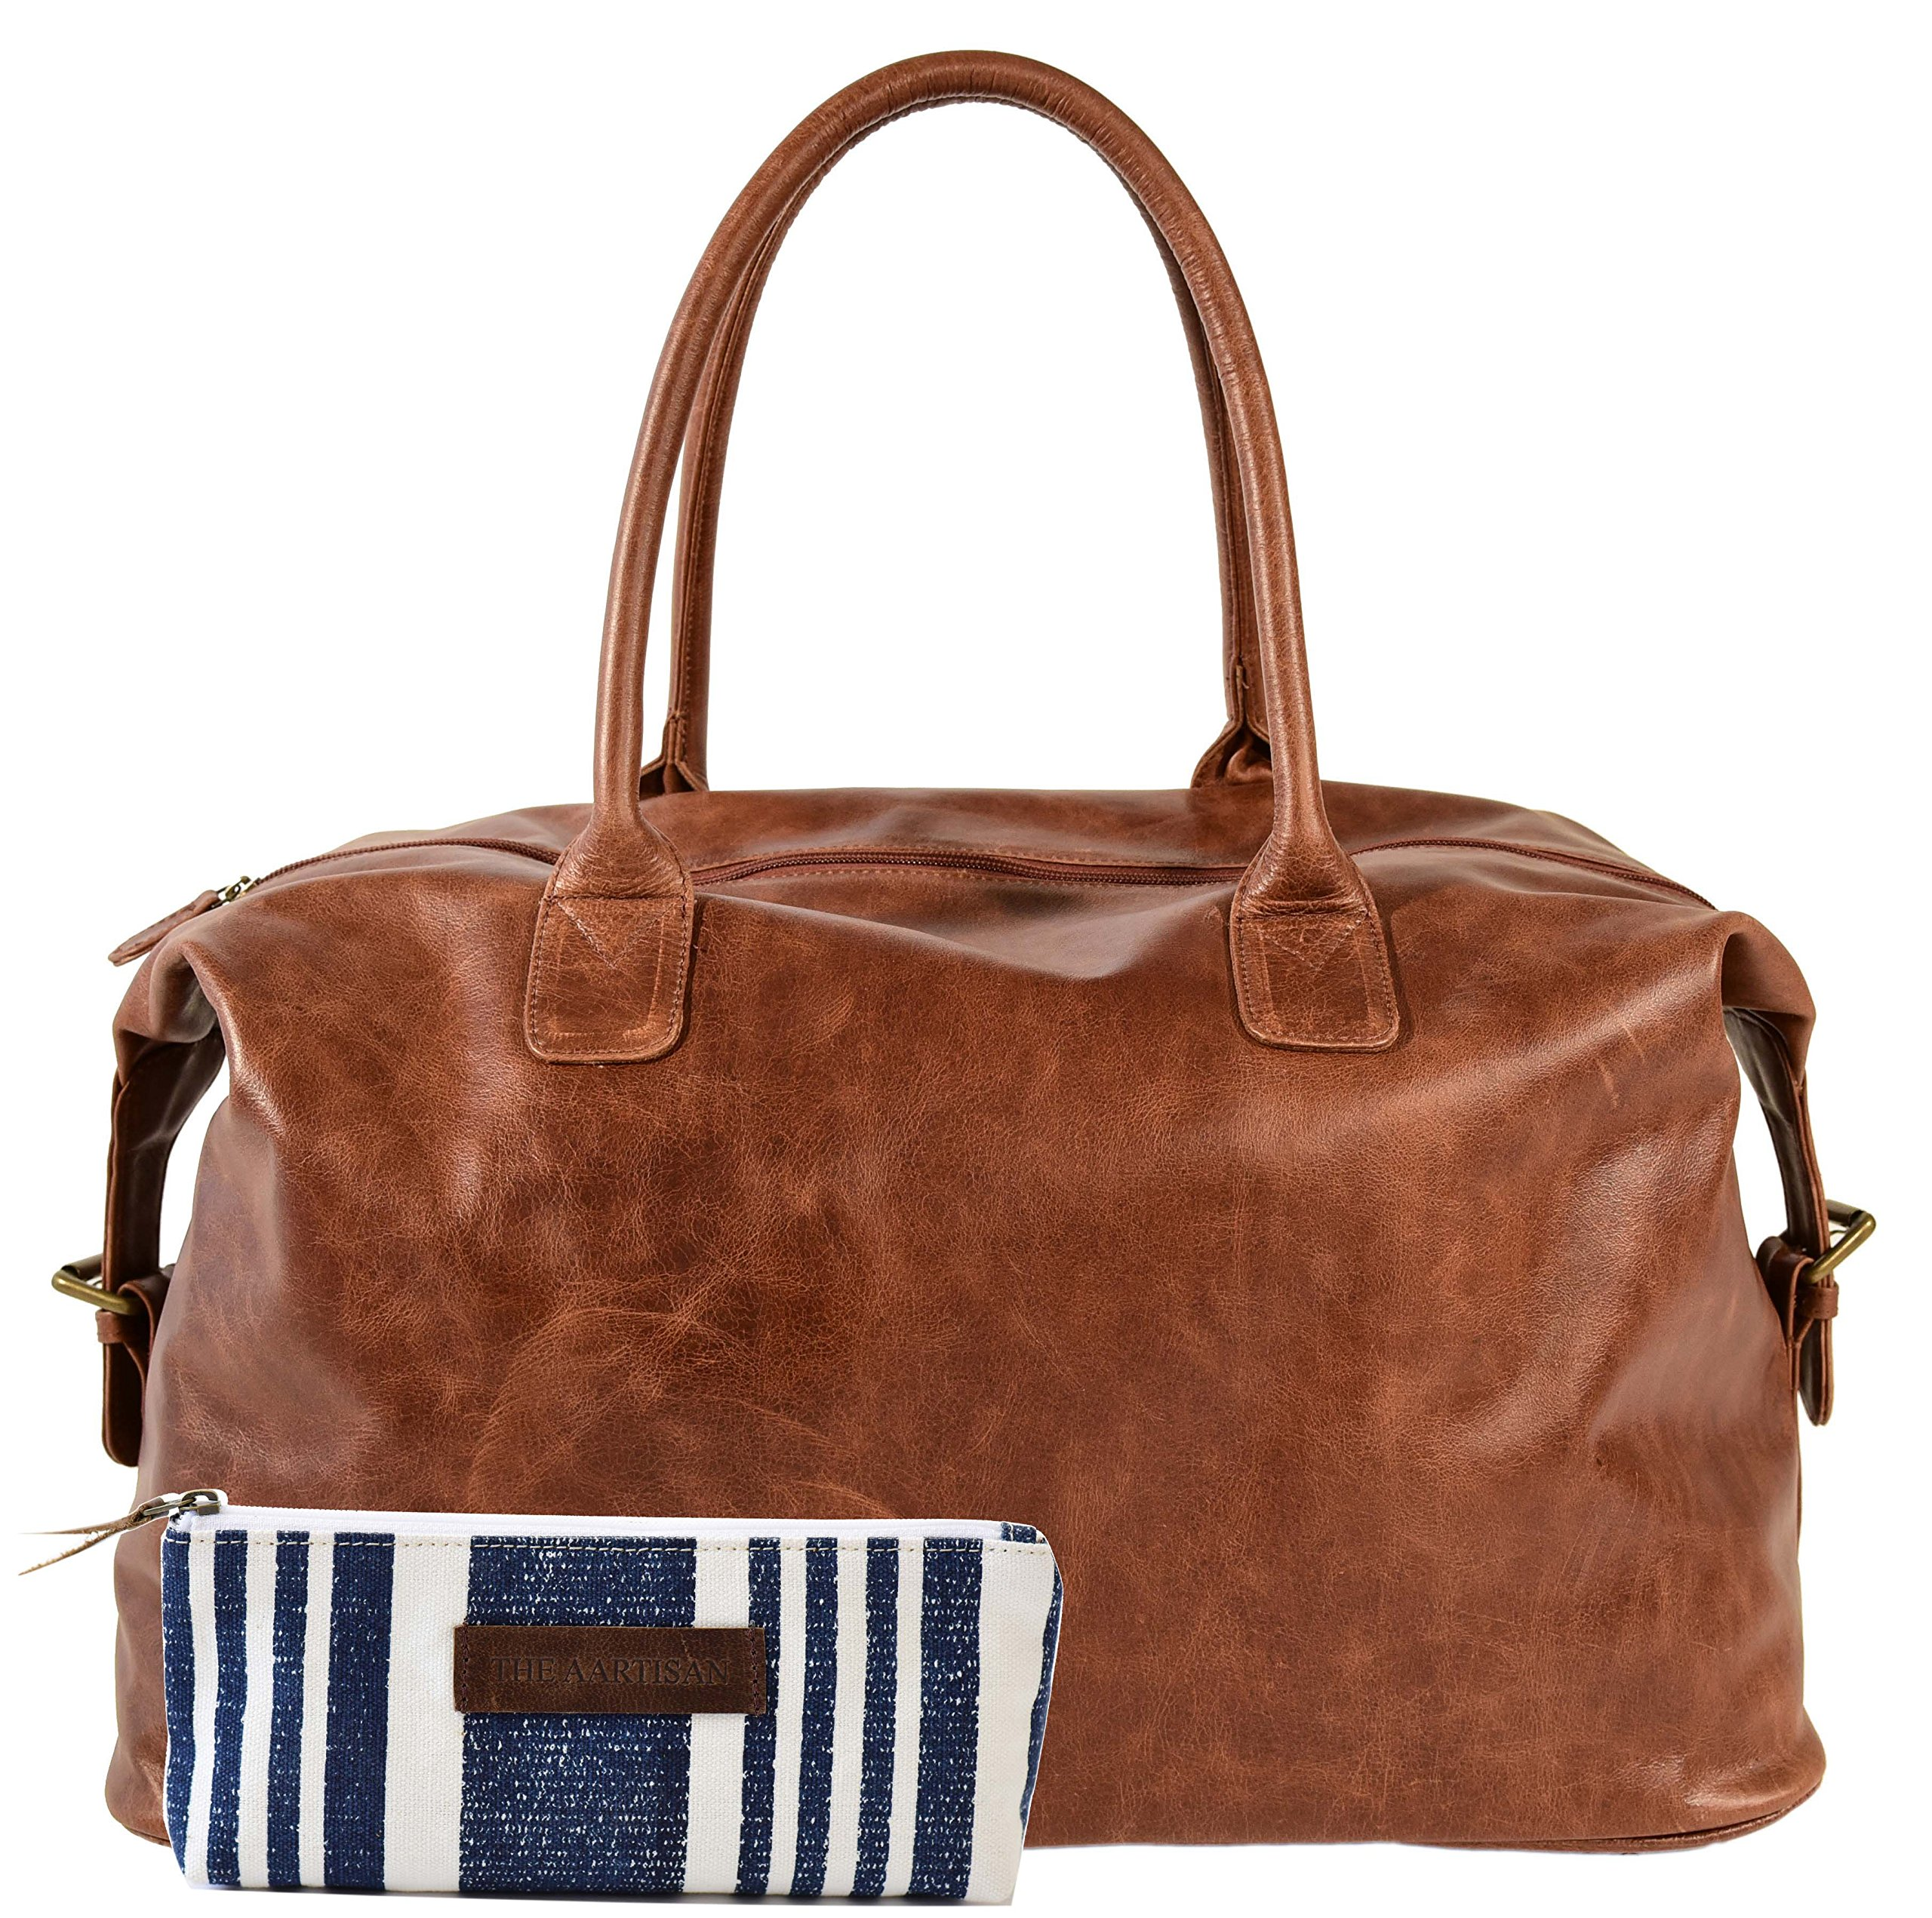 The Aartisan 21'' Handcrafted Genuine Leather Duffel Bag for Men Travel Weekend Bag (Brompton Cocoa), Free Gift Included, Multi Purpose Use